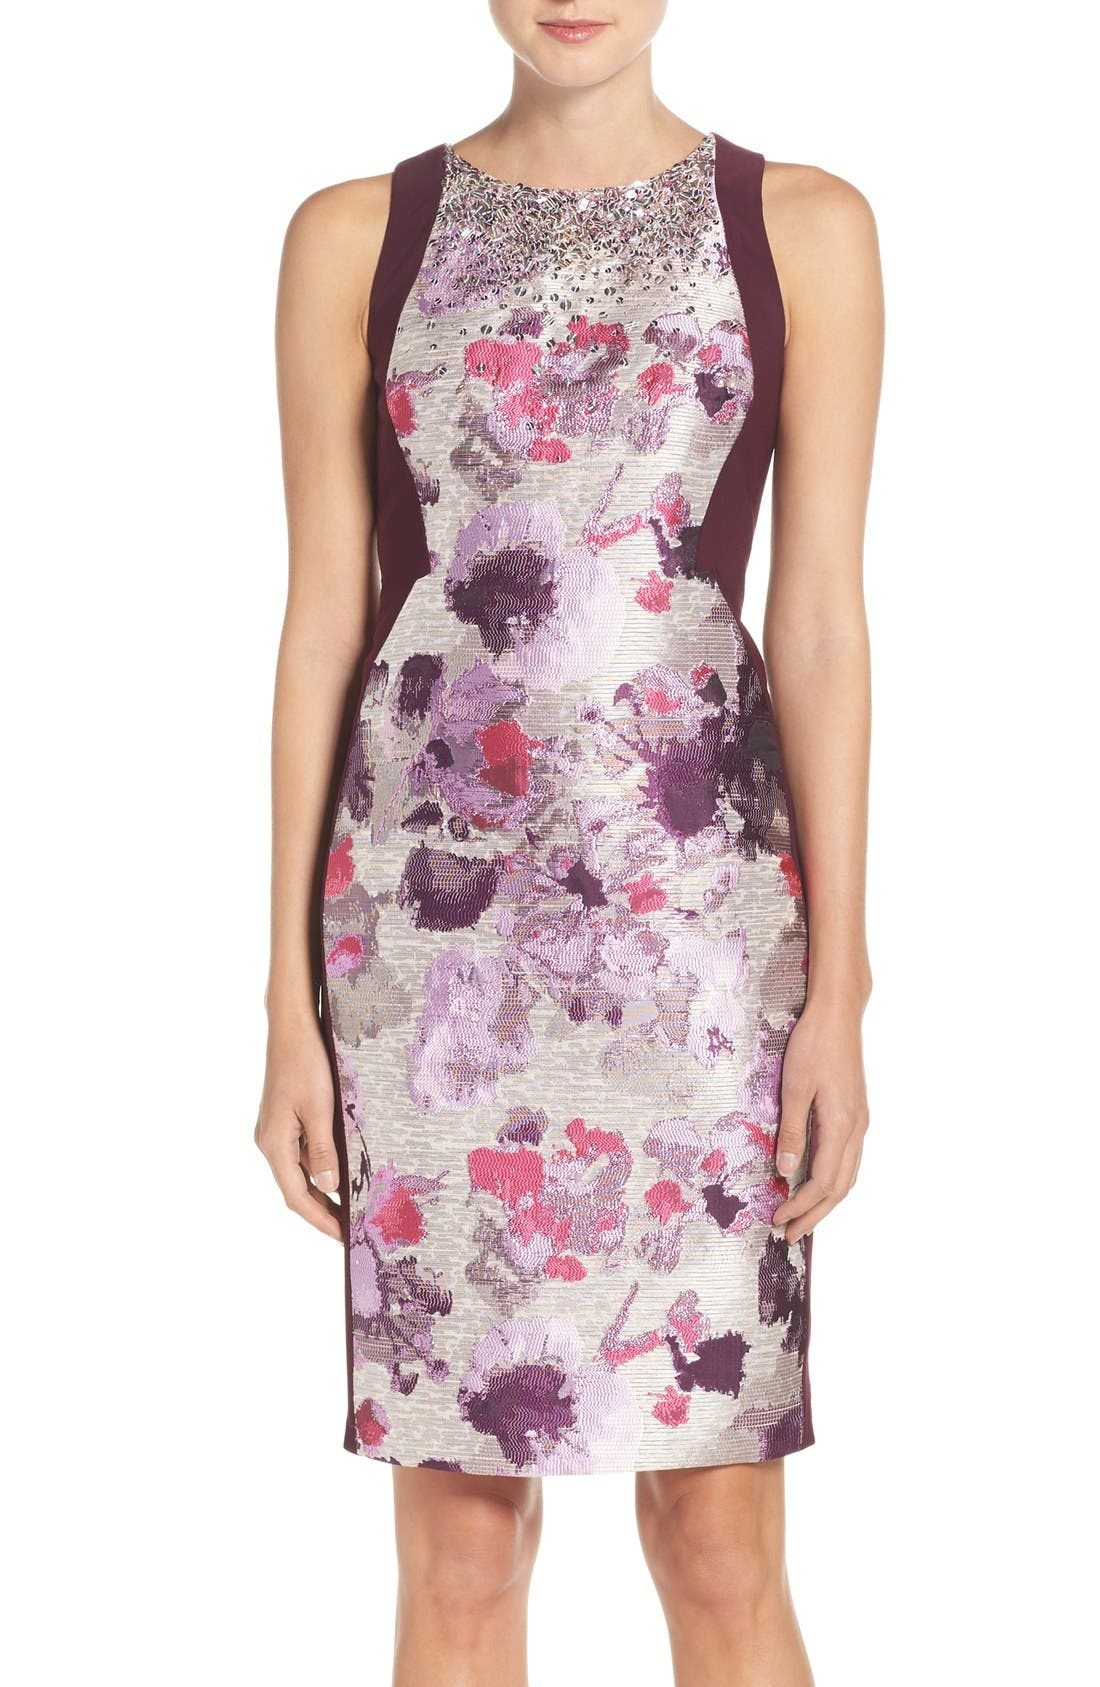 Alternate Image 1 Selected - Adrianna Papell Embellished Jacquard & Jersey Sheath Dress